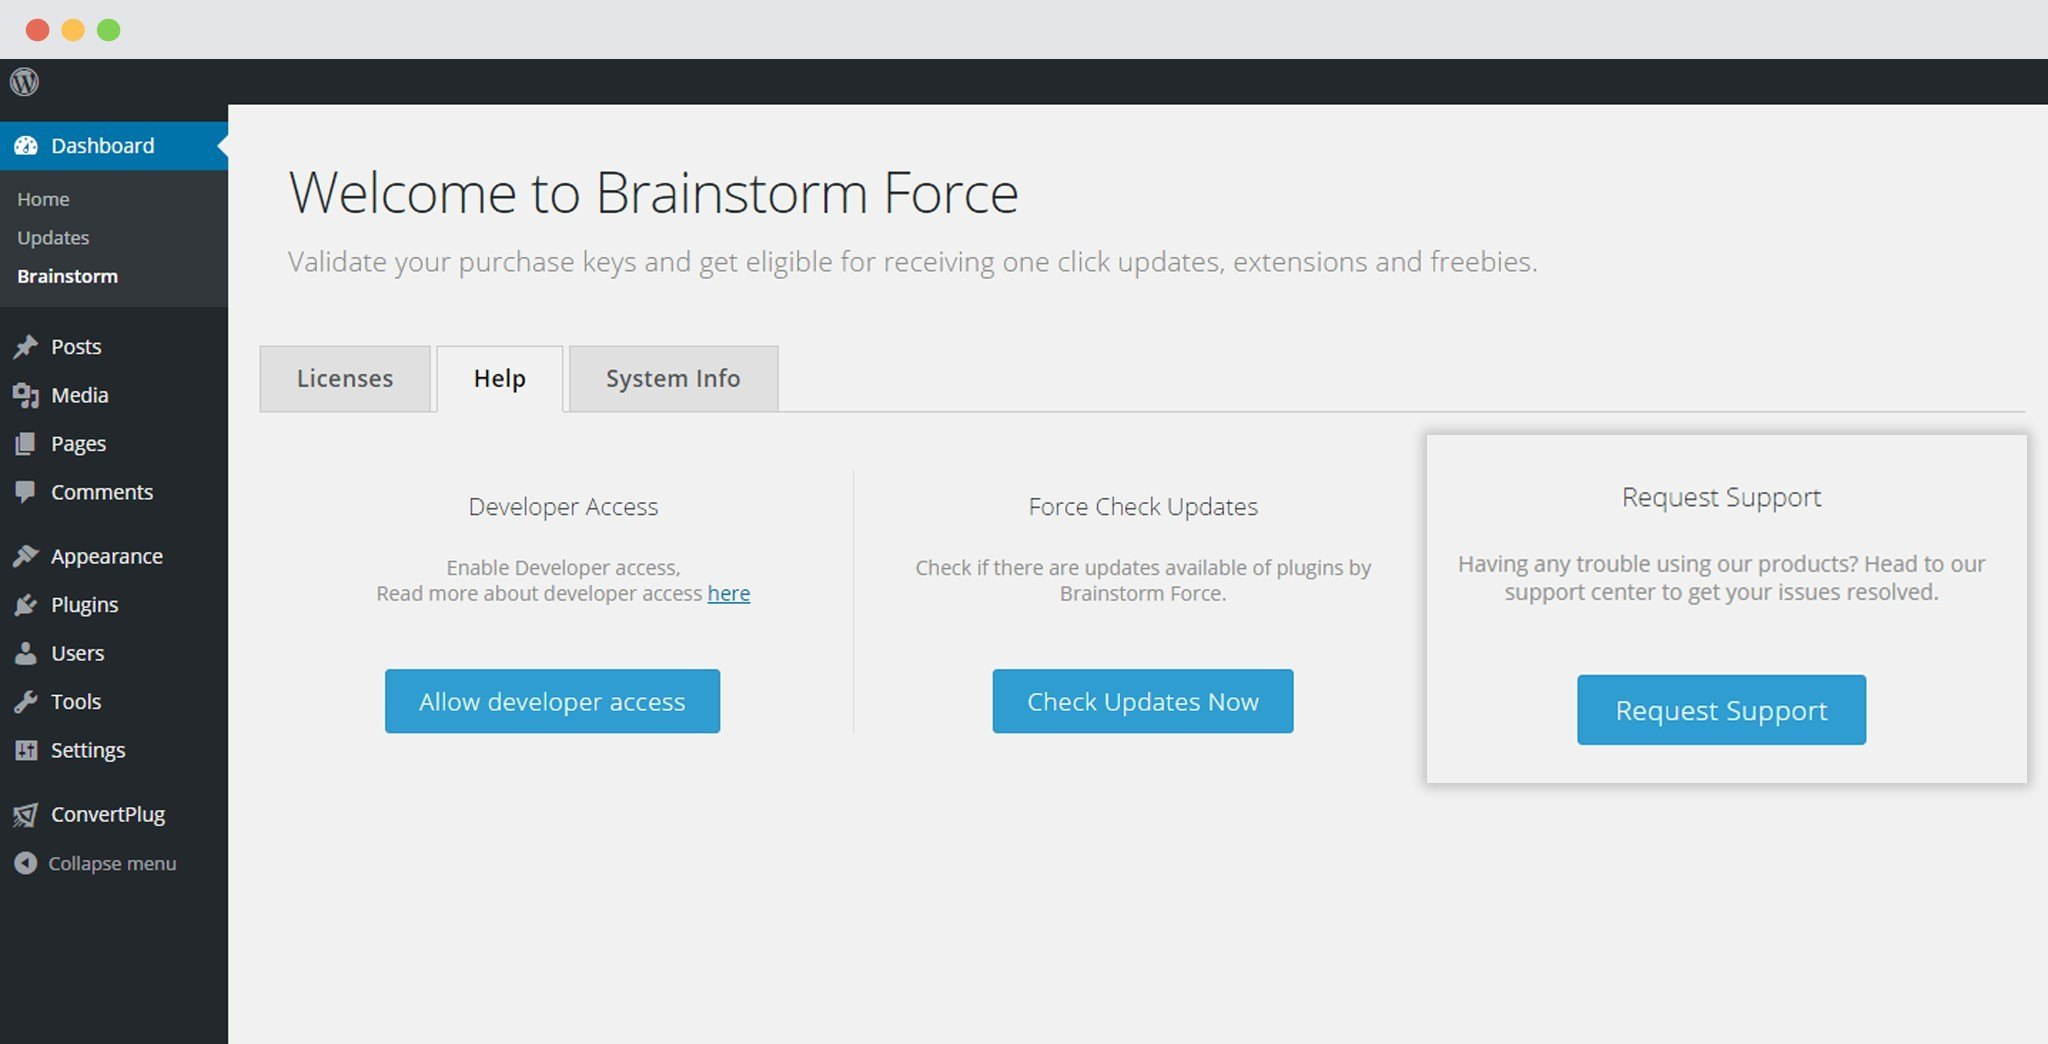 Request-support from Brainstorm Force